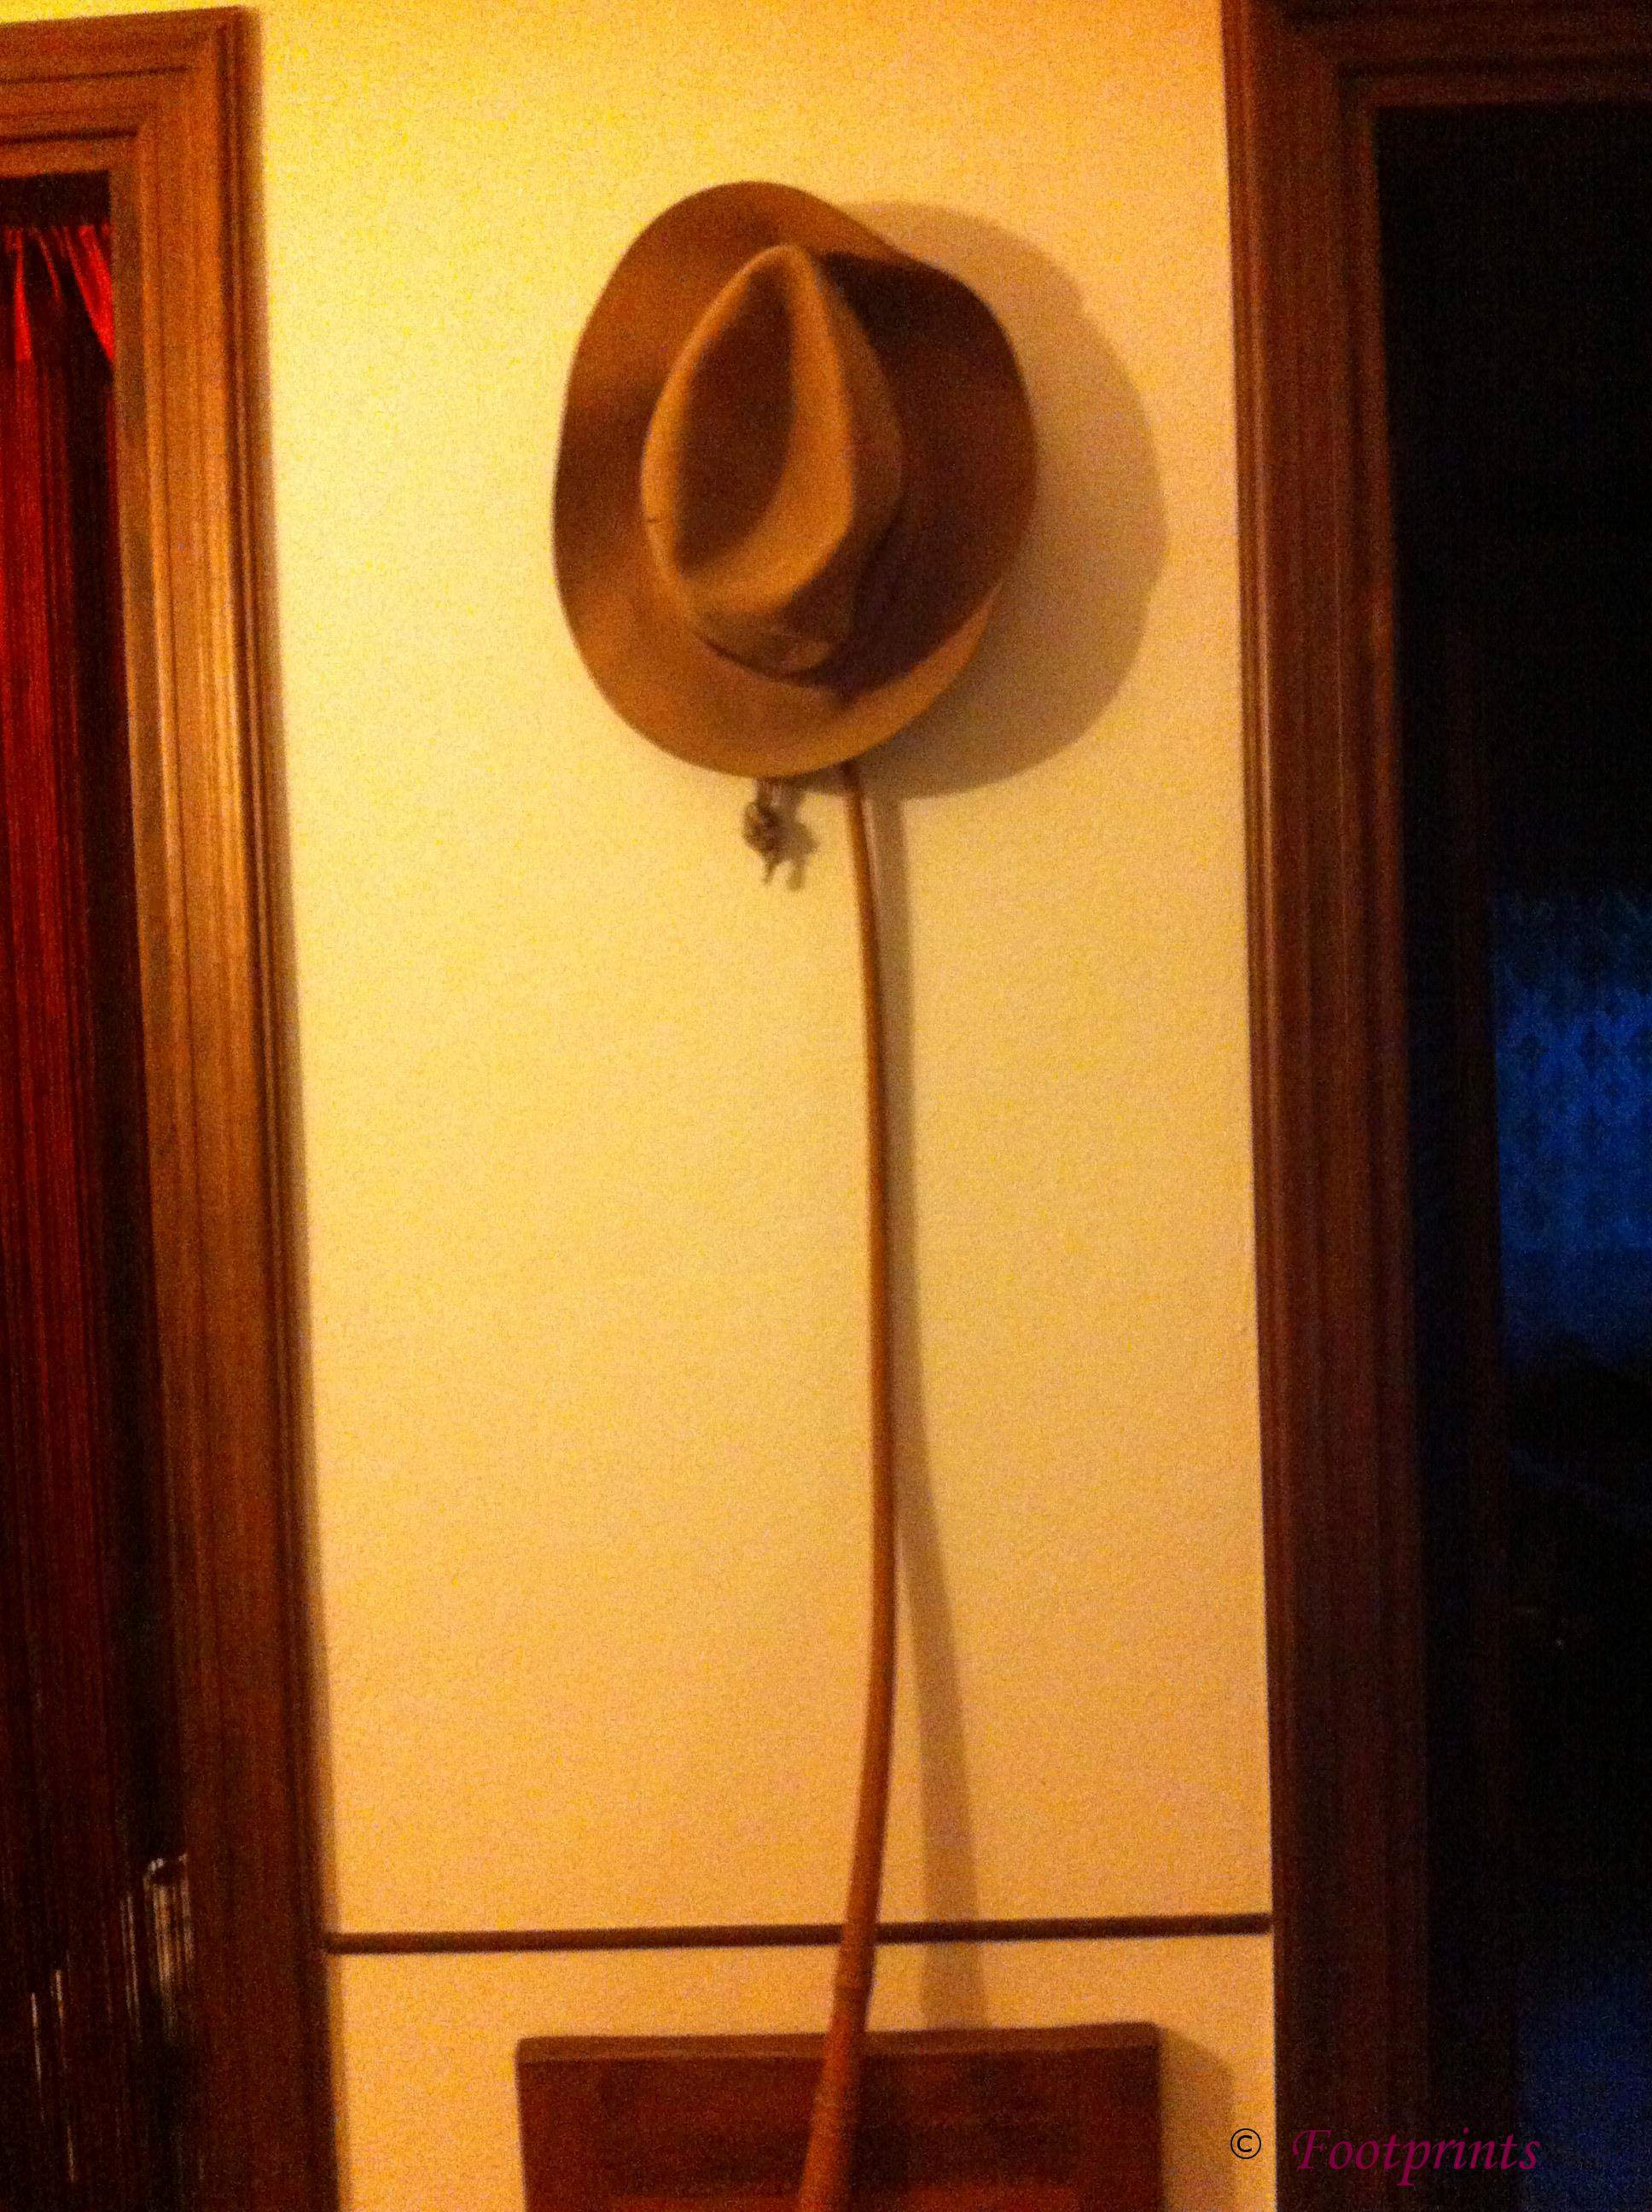 Antonio Arici. Hat and Whip from WA